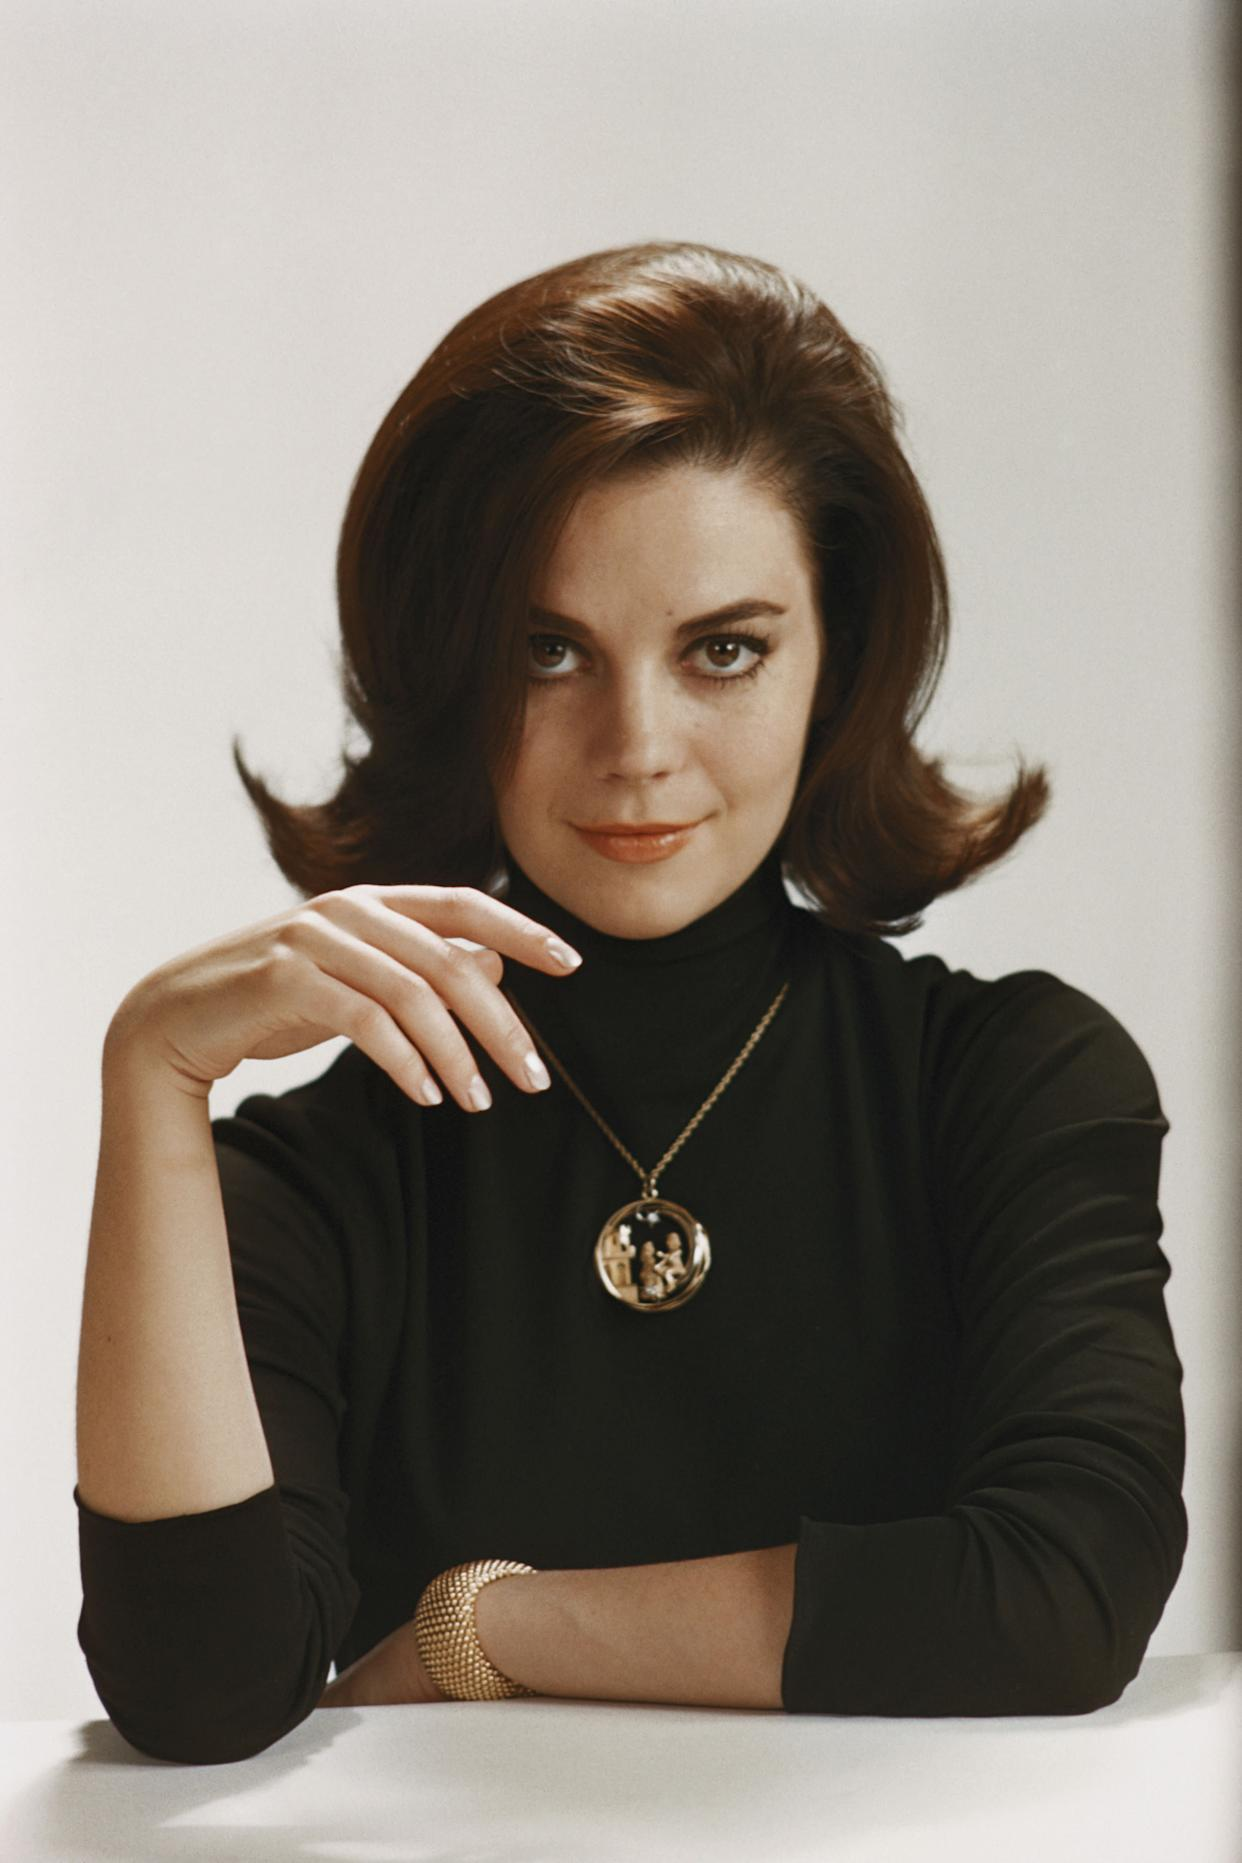 The actress wears a black turtleneck in this photo from the early '60s.